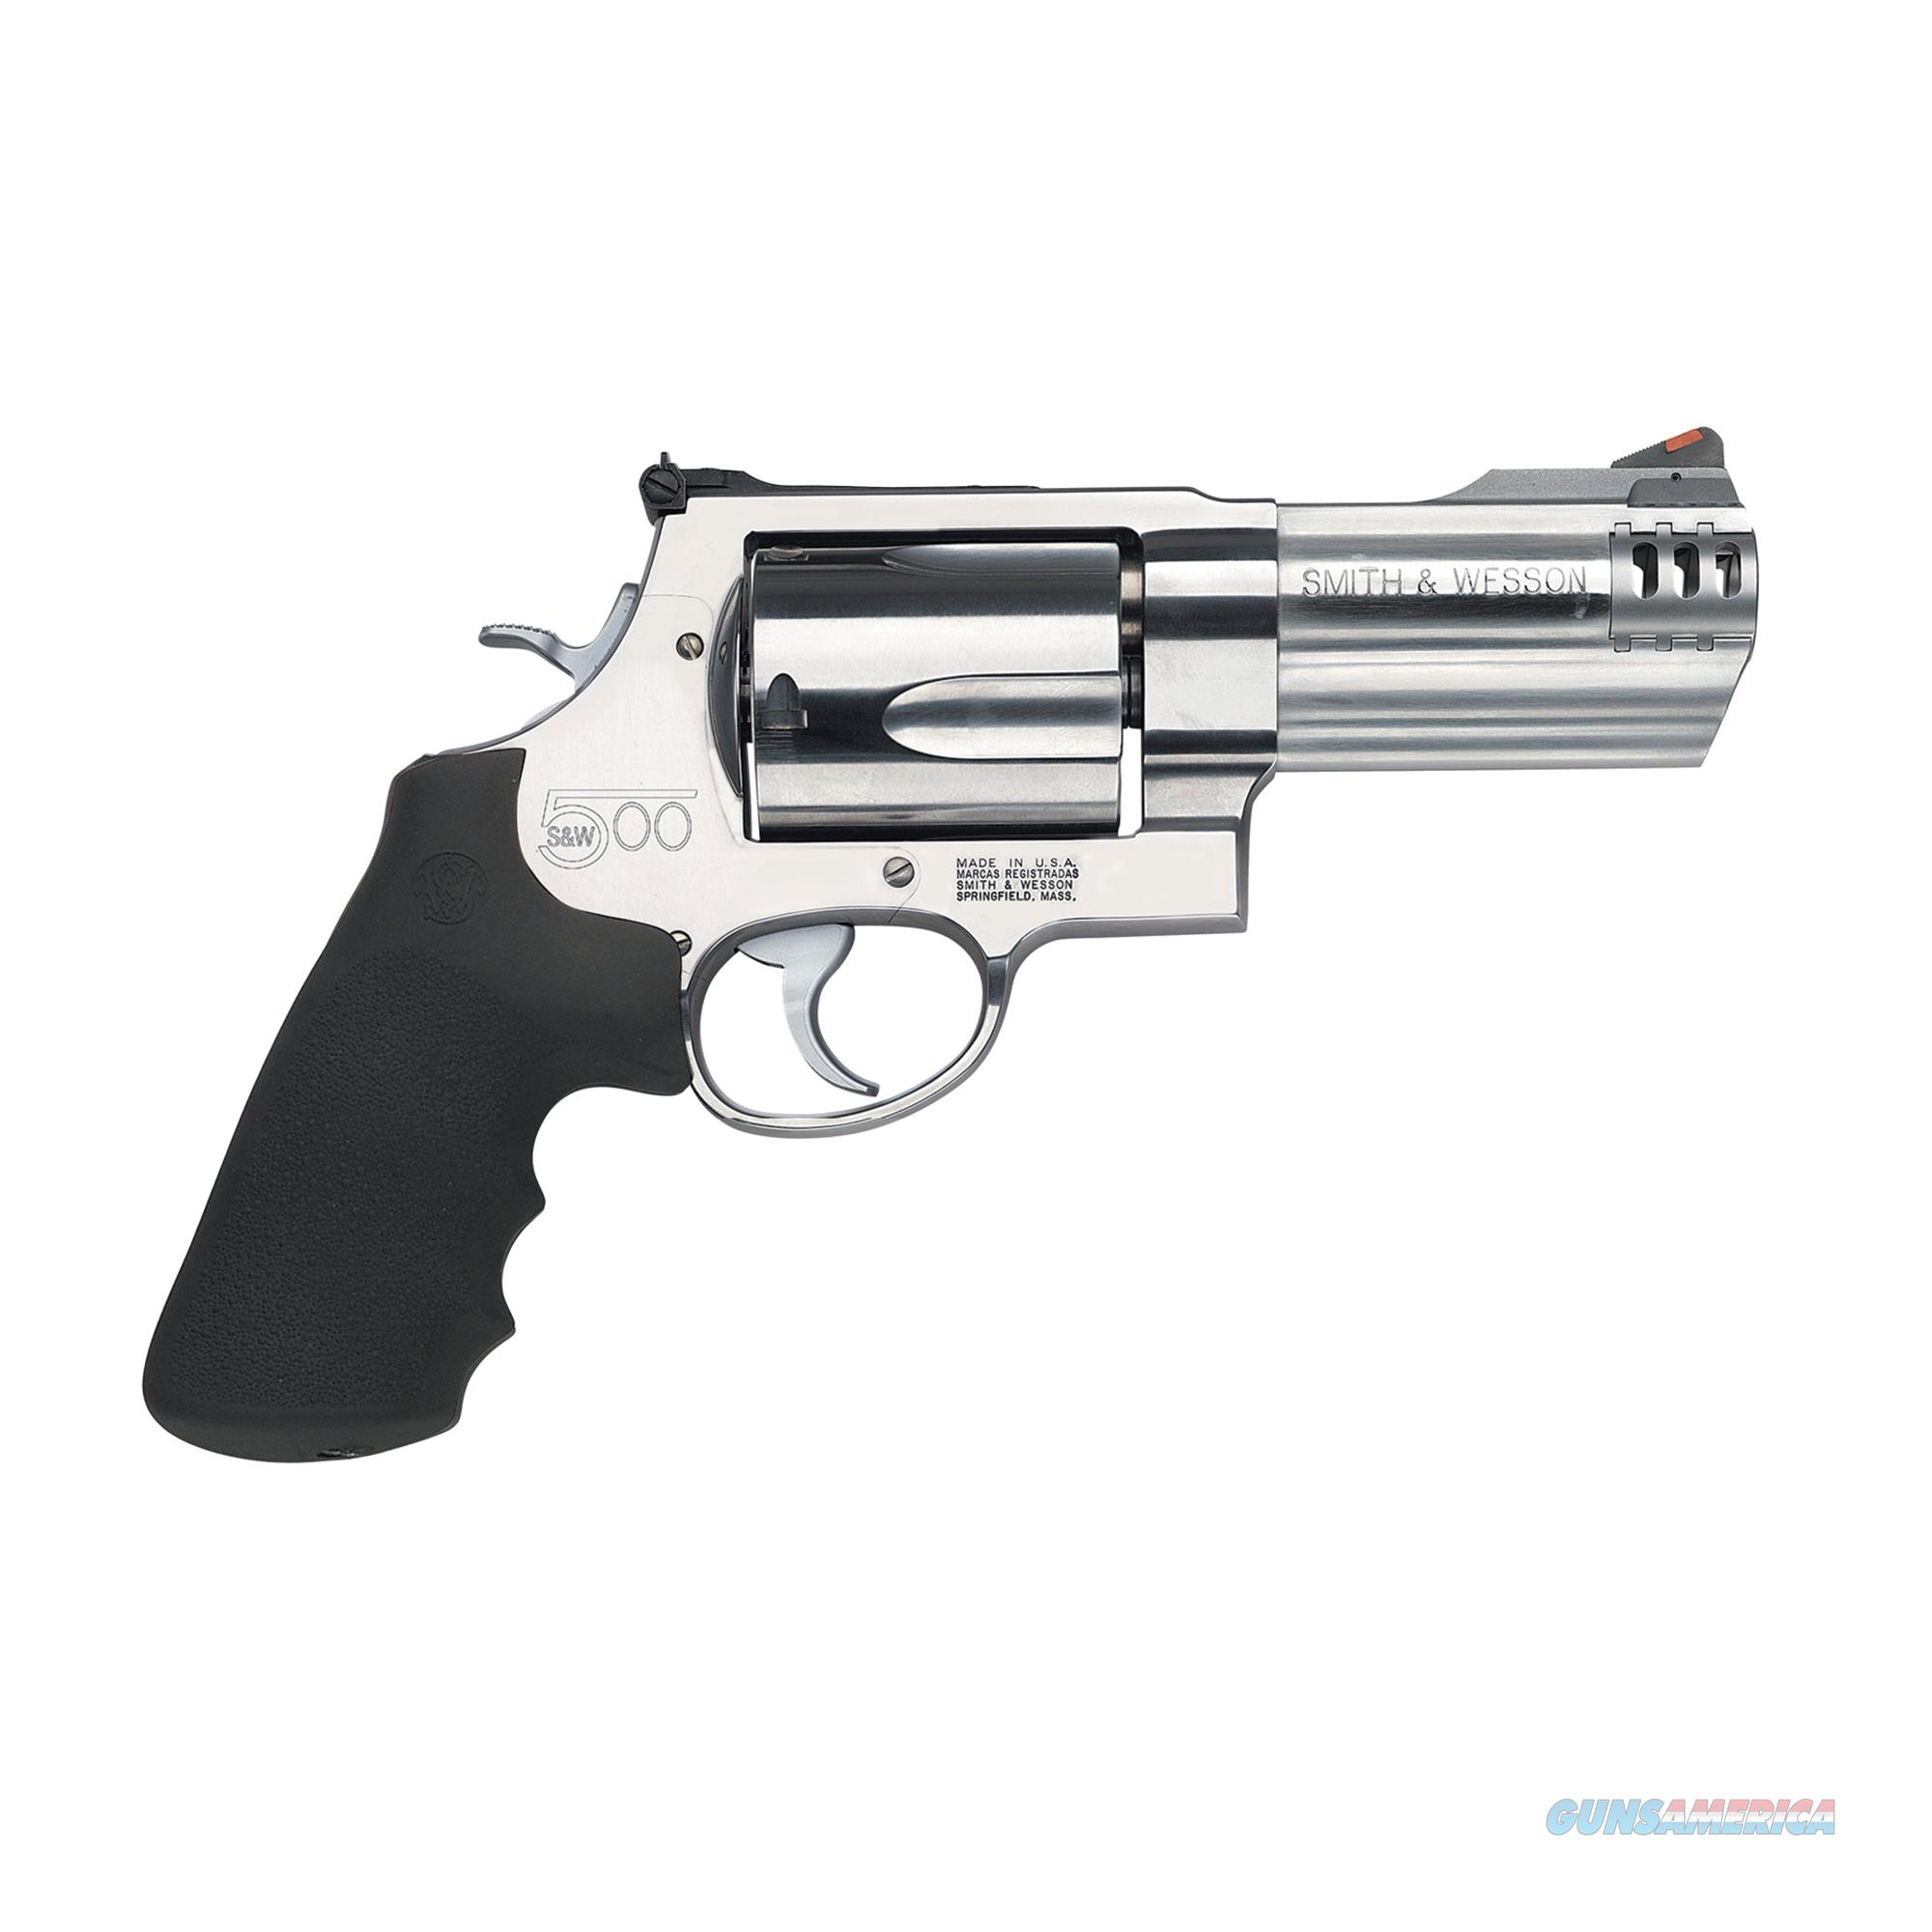 """Smith & Wesson .500 S&W 4"""" 5 Round Synthetic Grip Stainless Steel - New in Box  Guns > Pistols > Smith & Wesson Revolvers > Full Frame Revolver"""